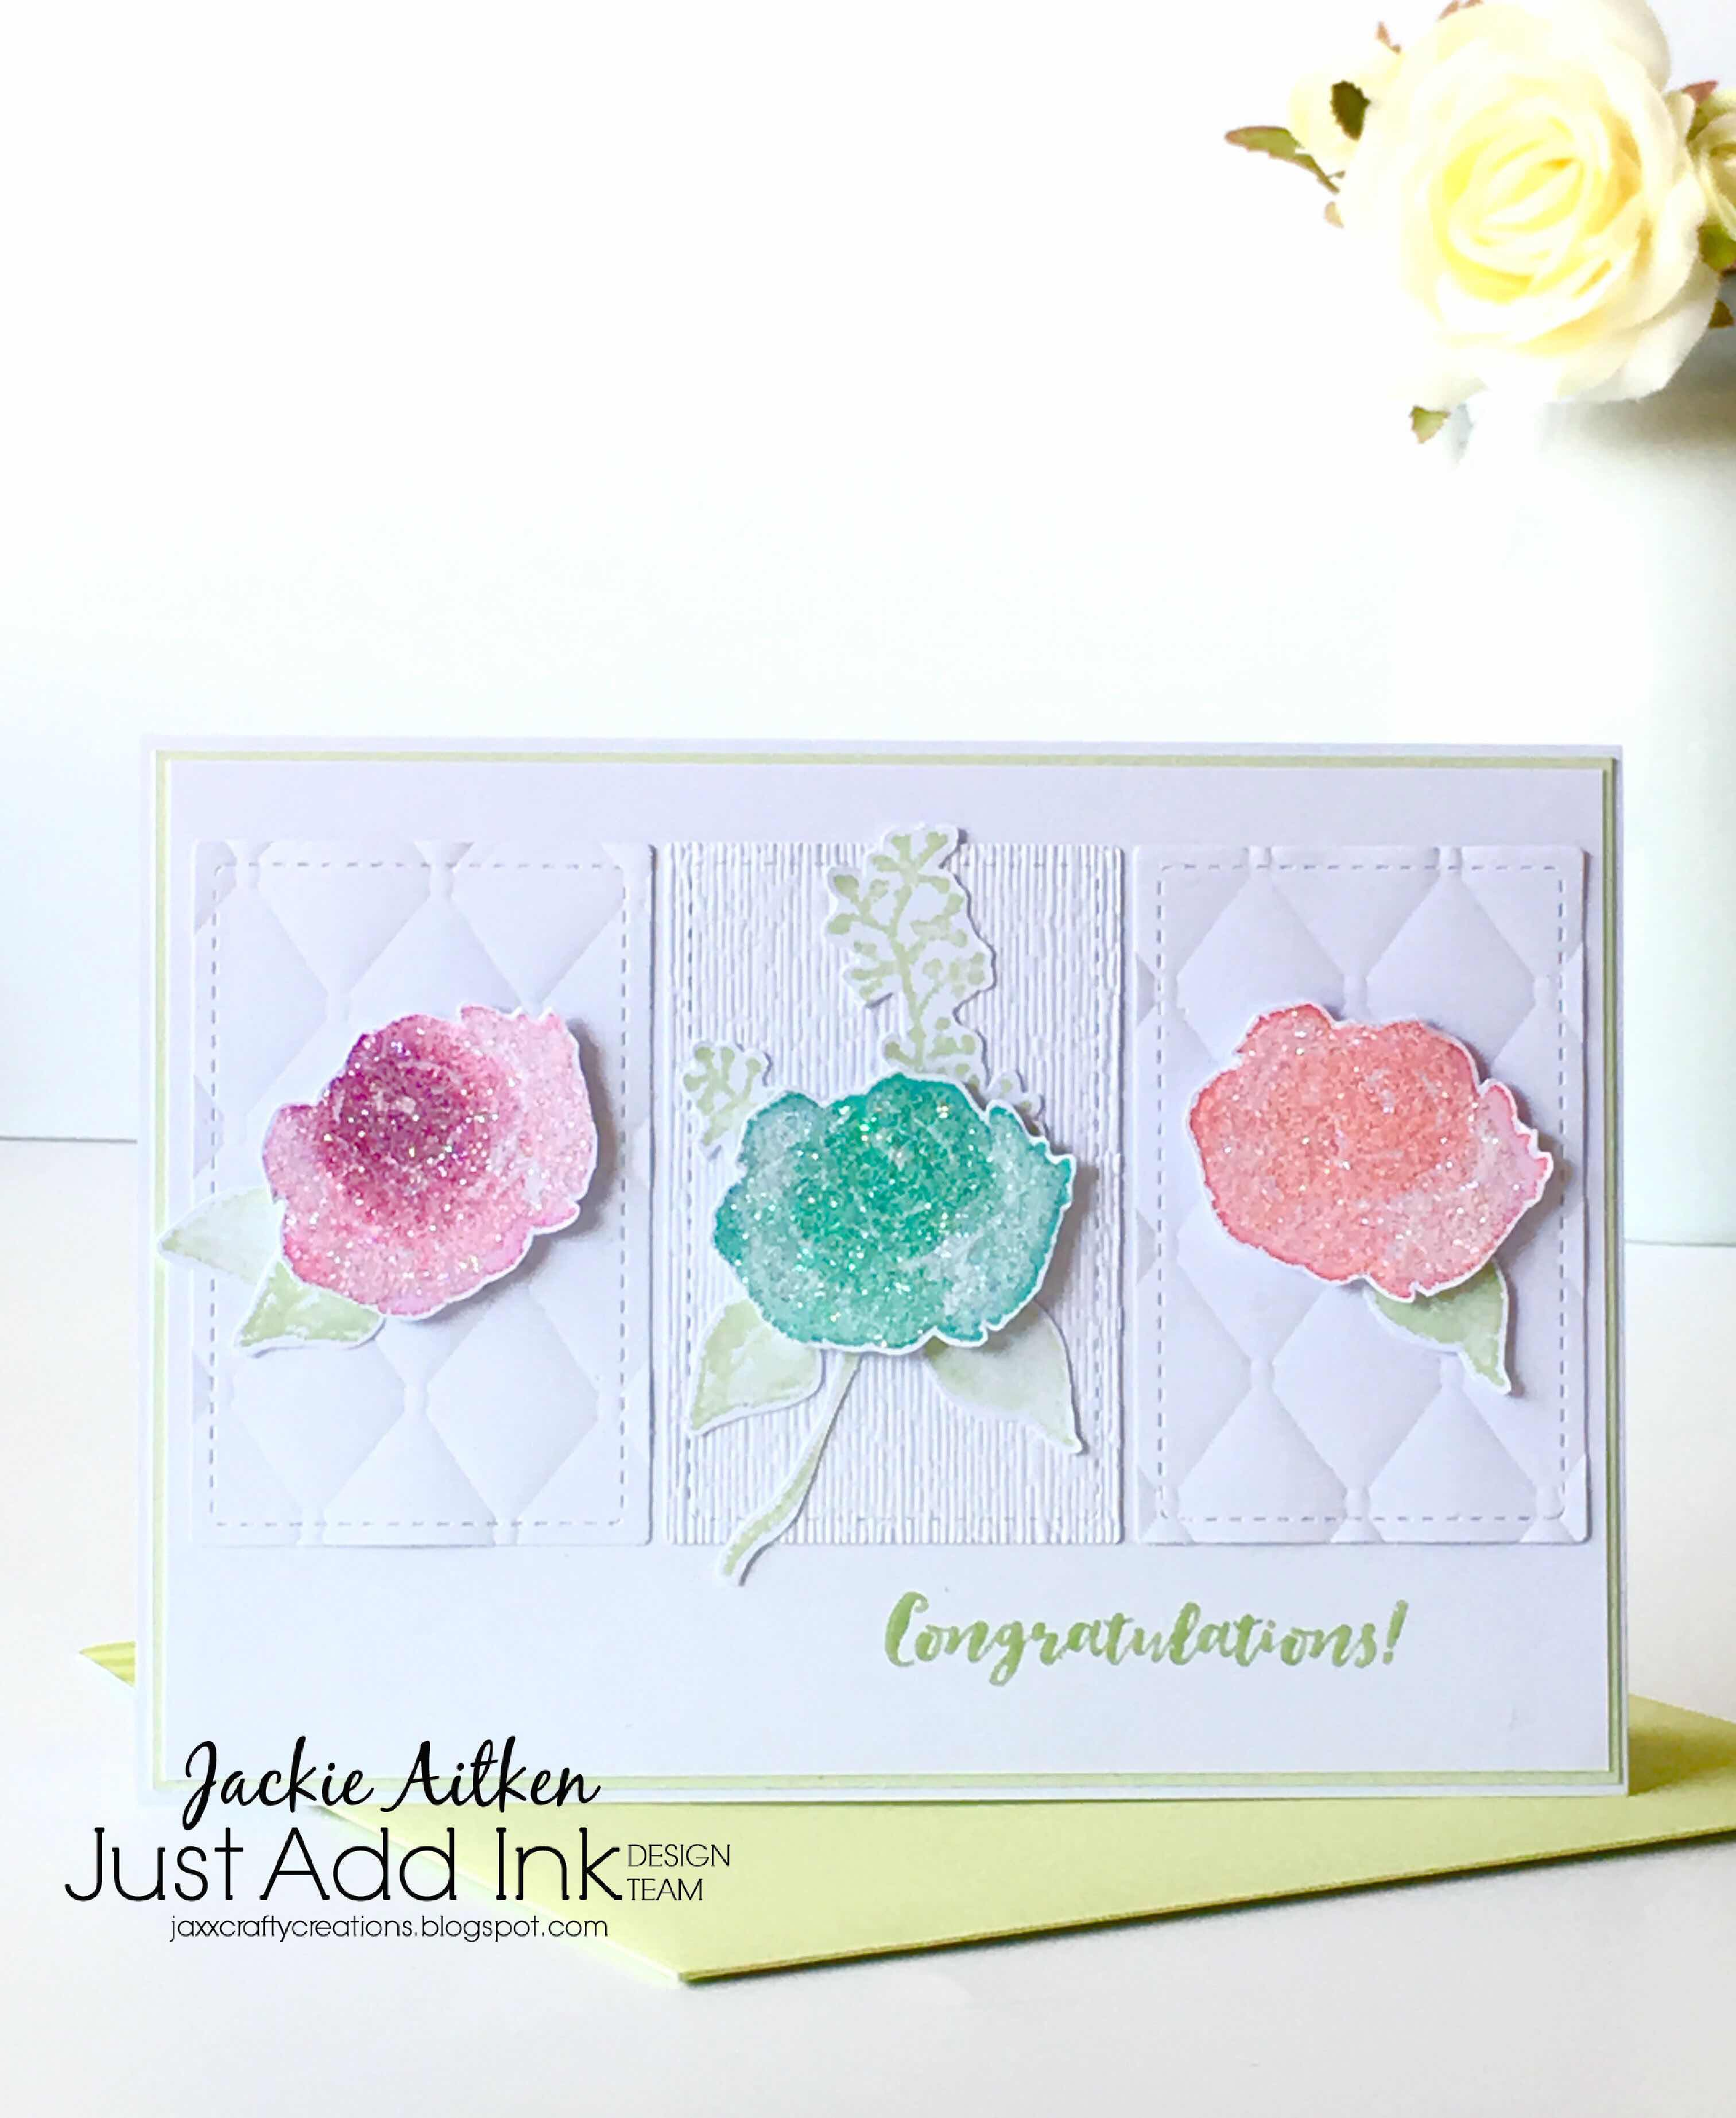 jaxxcraftycreations, first frost stampin up cards, subtle embossing folder, tufted embossing folder